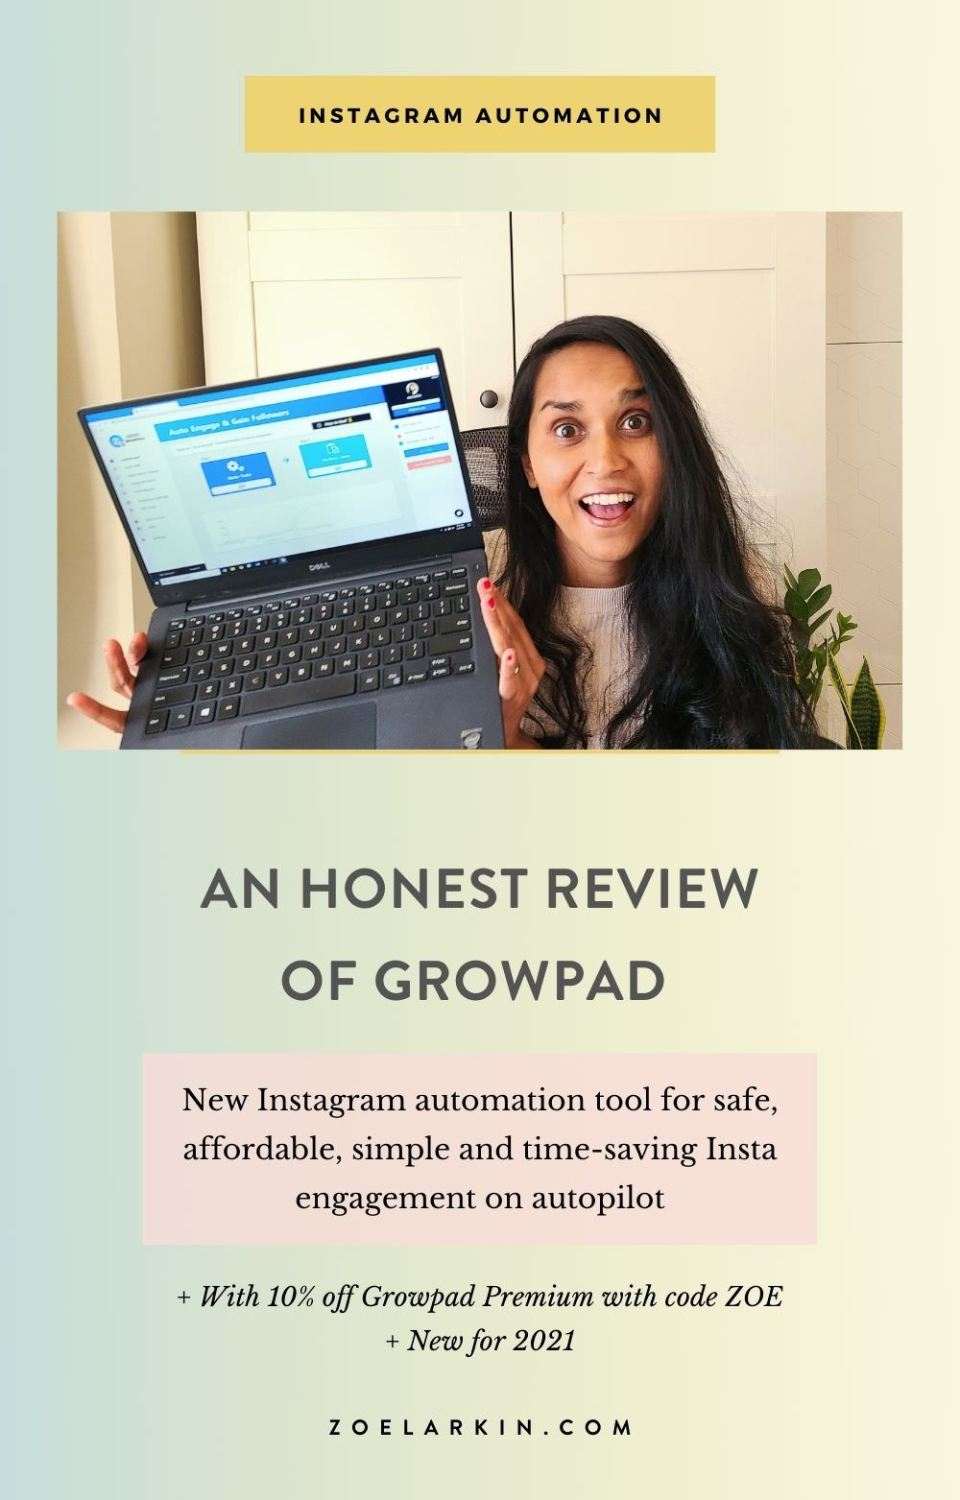 You've probably heard of Growpad, the newest and SAFEST Instagram automation bot that engages authentically on your behalf using a Chrome extension on your own computer via the Auto Mouse functionality. It's a robust, yet simple and intuitive piece of software that even Instagram automation beginners will find easy. Use Growpad promo code ZOE, you'll get 10% off your subscription to Growpad Premium. Get started for free! Check out my indepth tutorial. get off Instagram and get your life back!